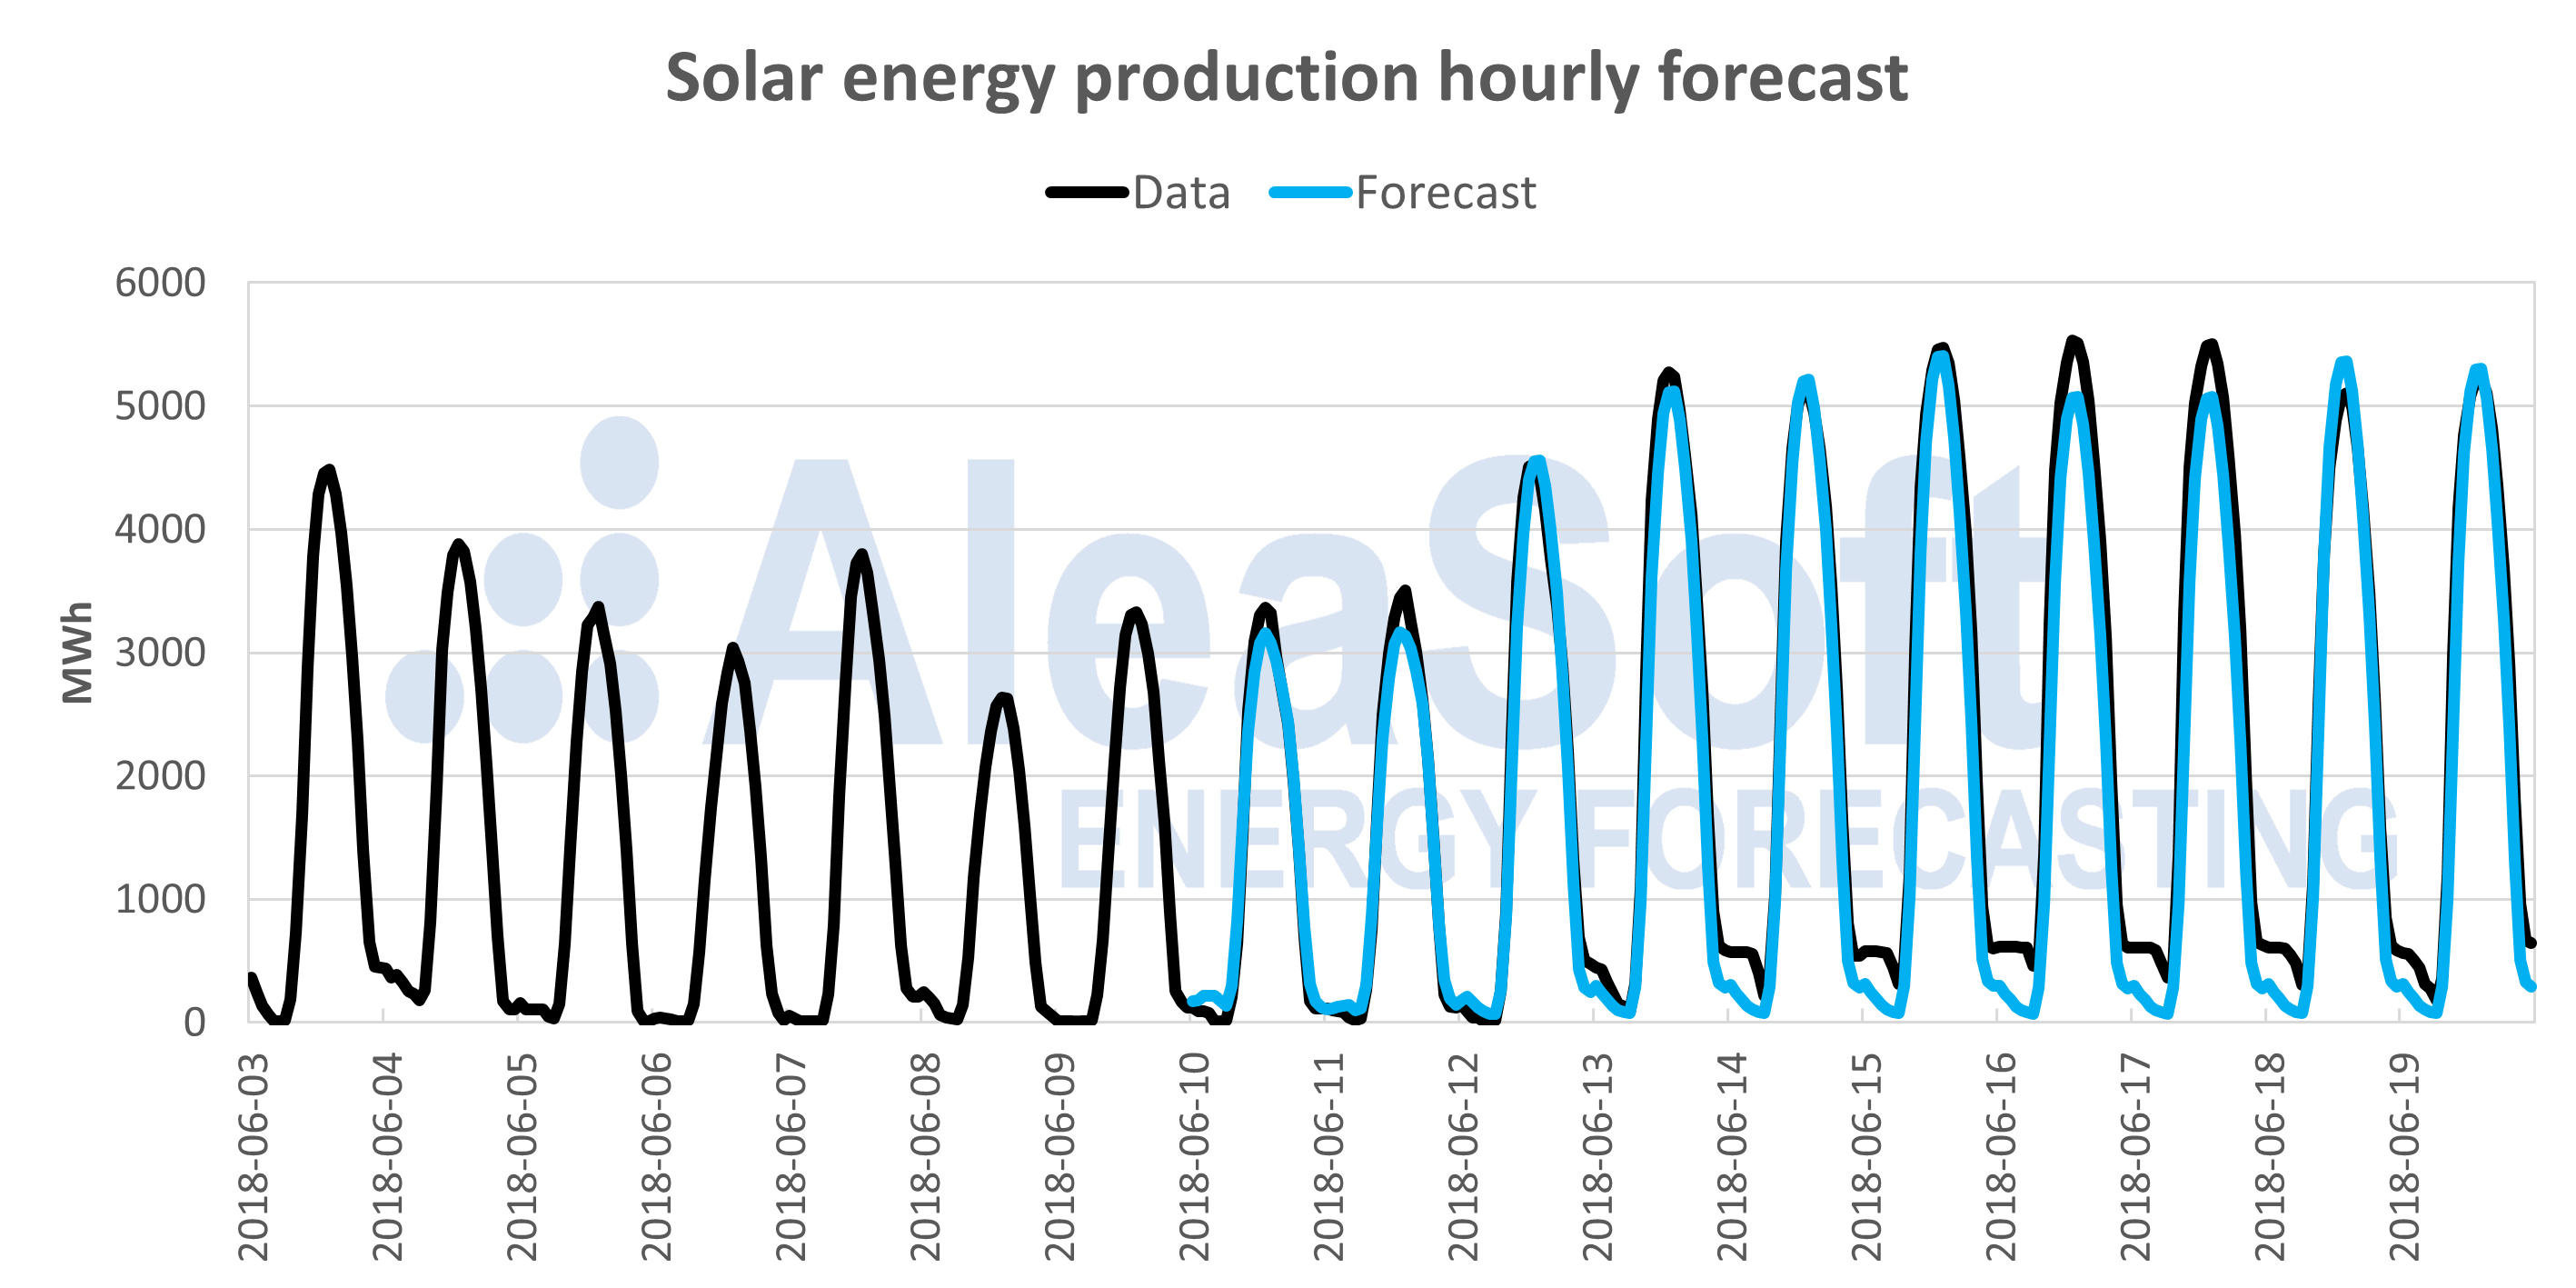 AleaSoft - Solar energy forecast